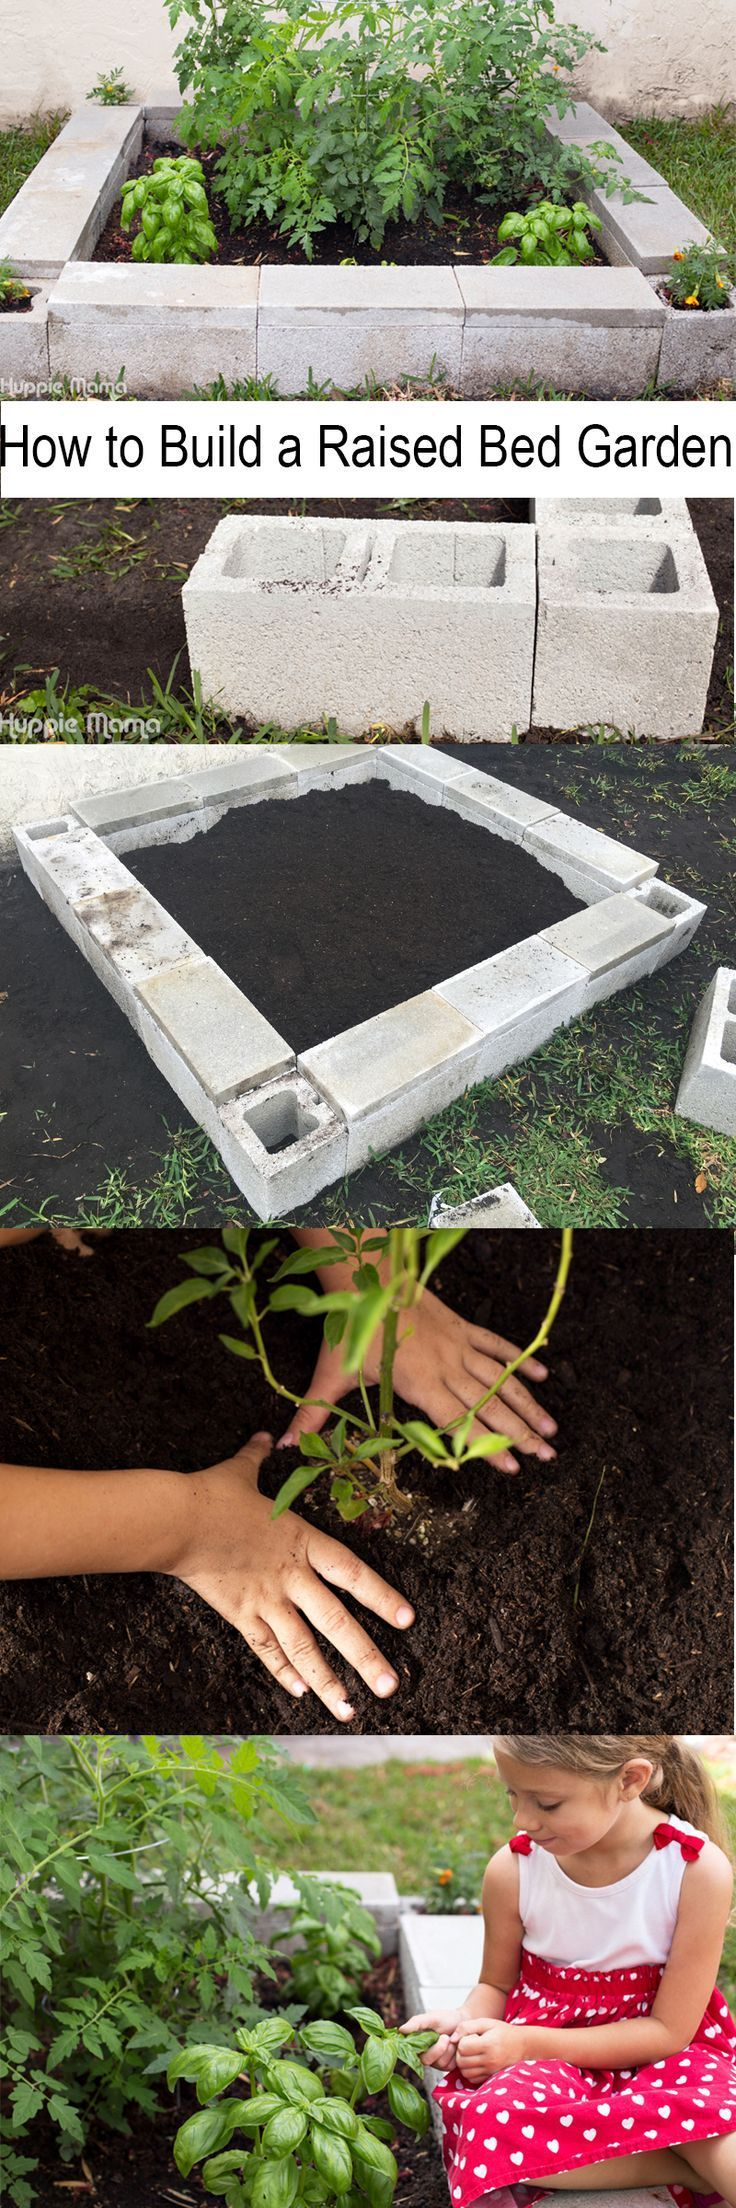 How to Build a Raised Bed Garden #EcoBoysAndGirls AD